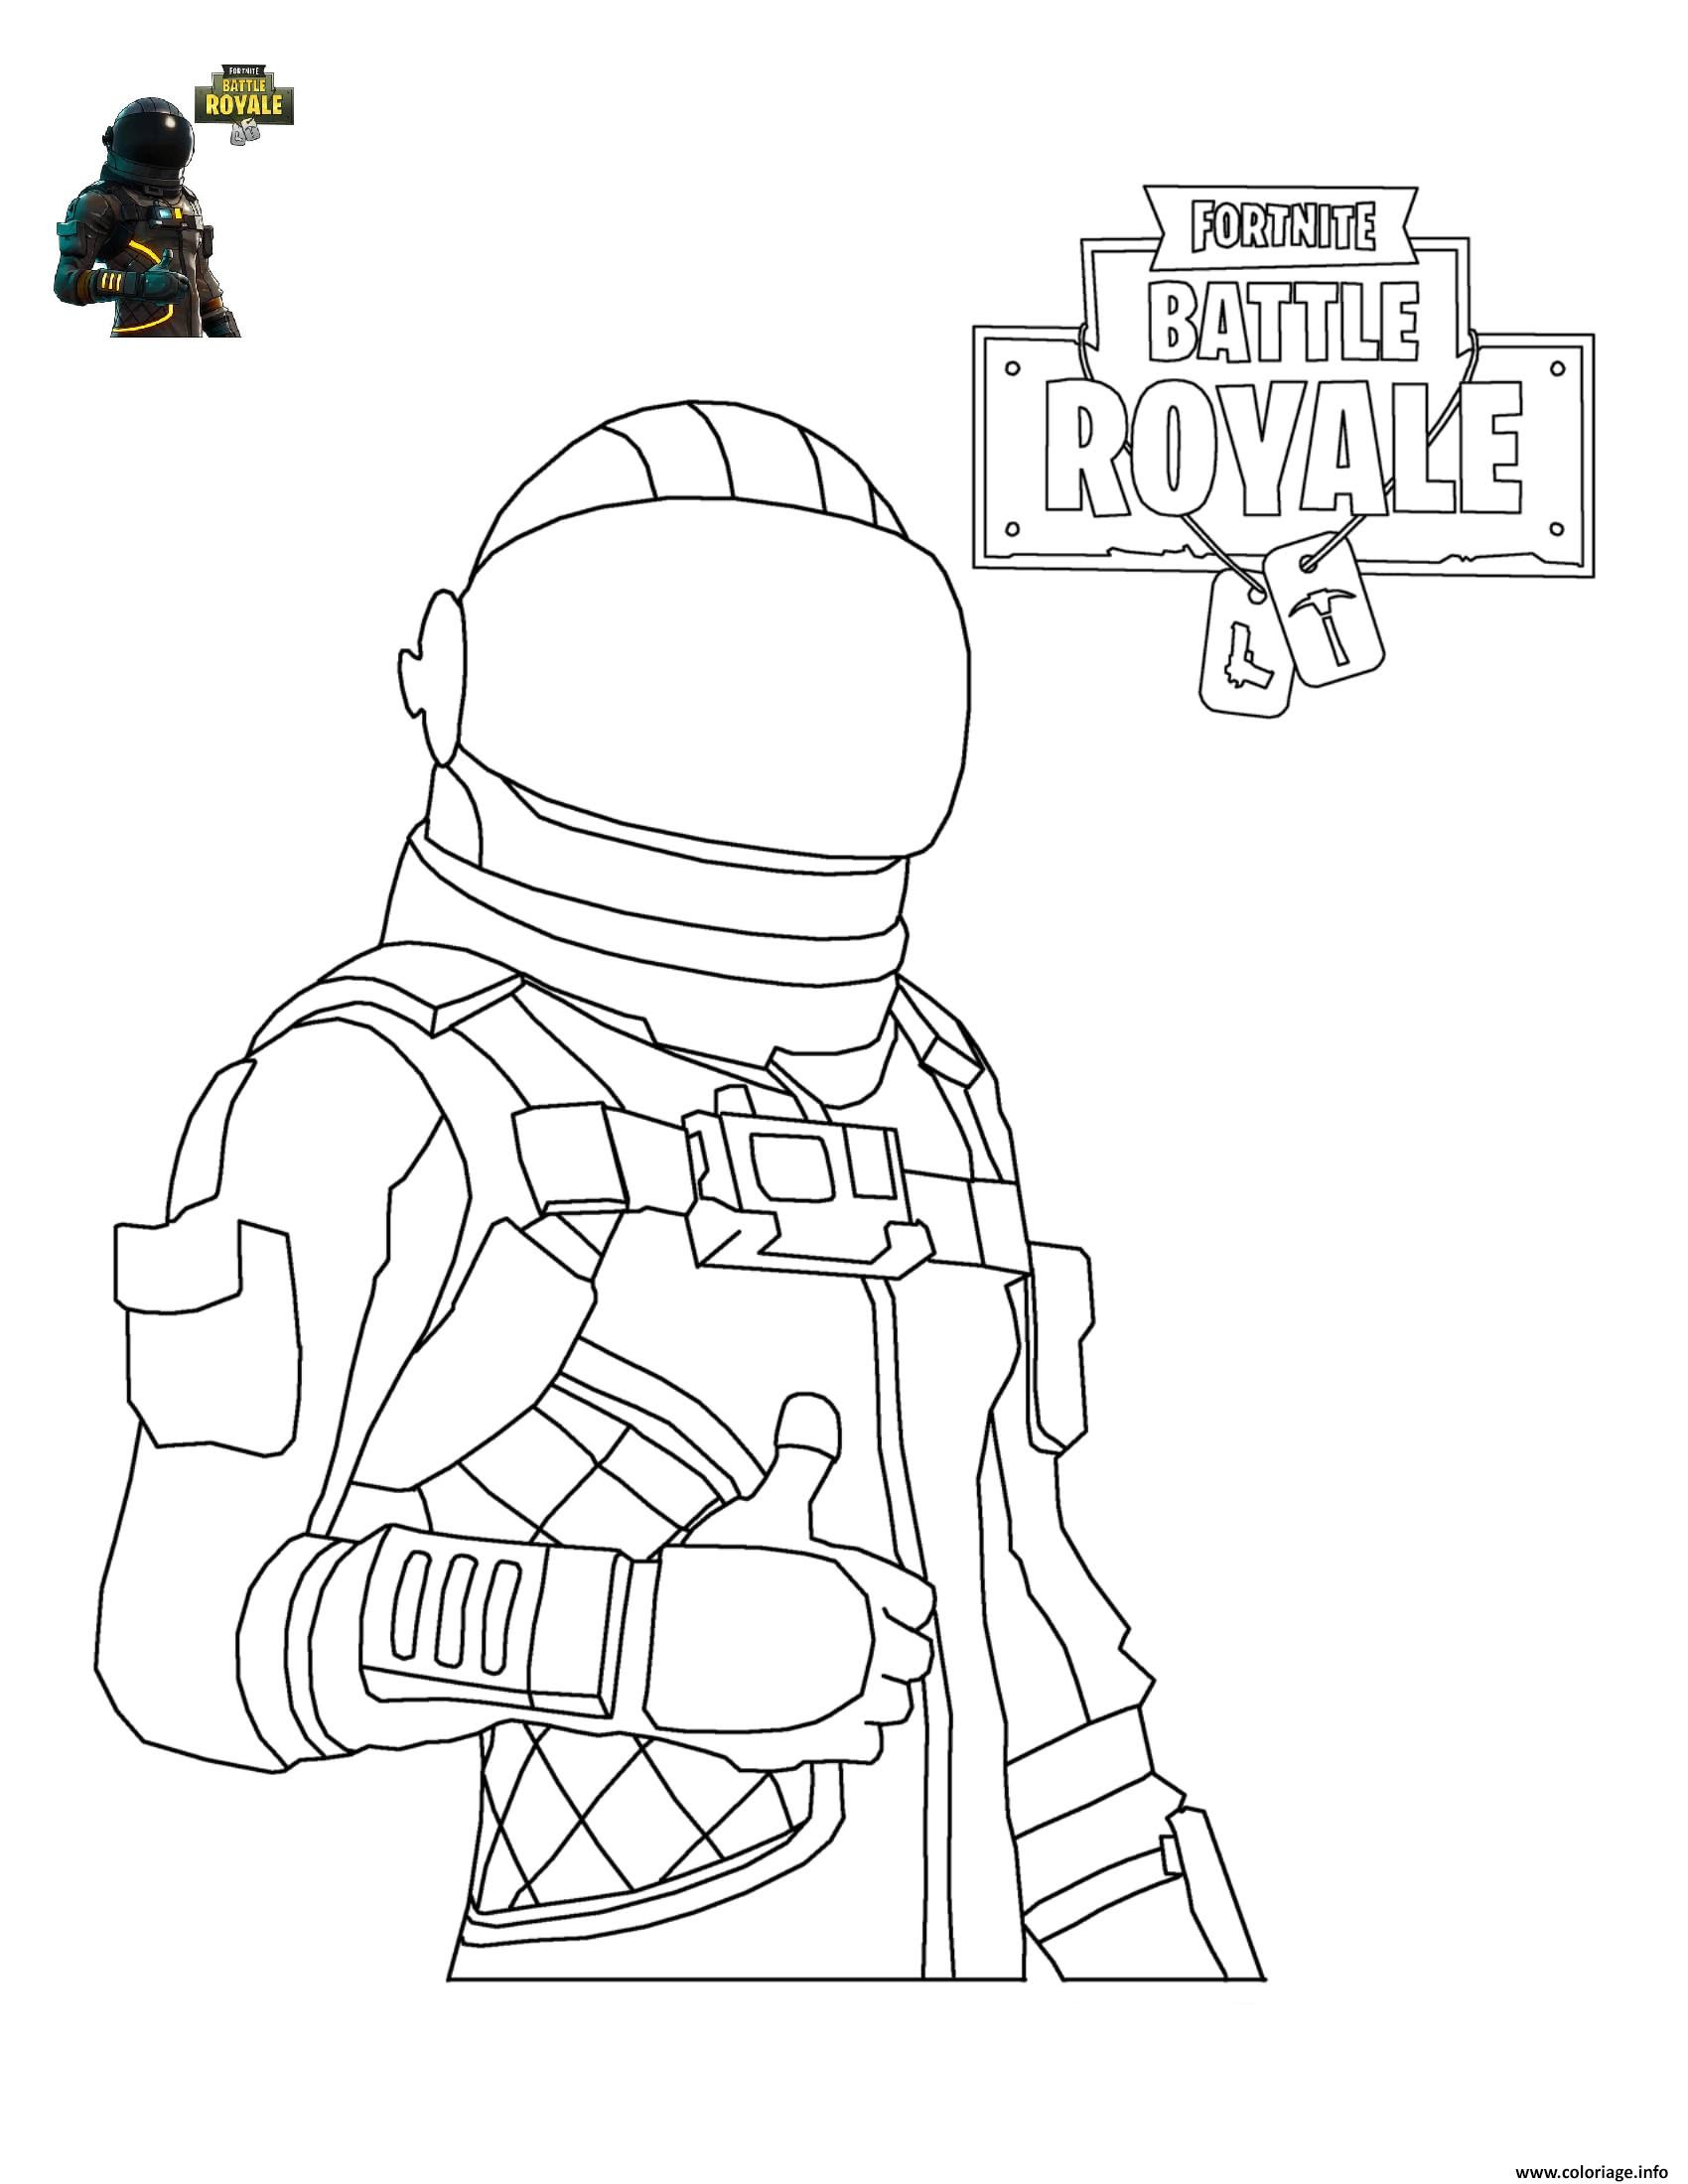 Fortnite Battle Royale Coloring Pages Pictures to Pin on Pinterest  ThePinsta